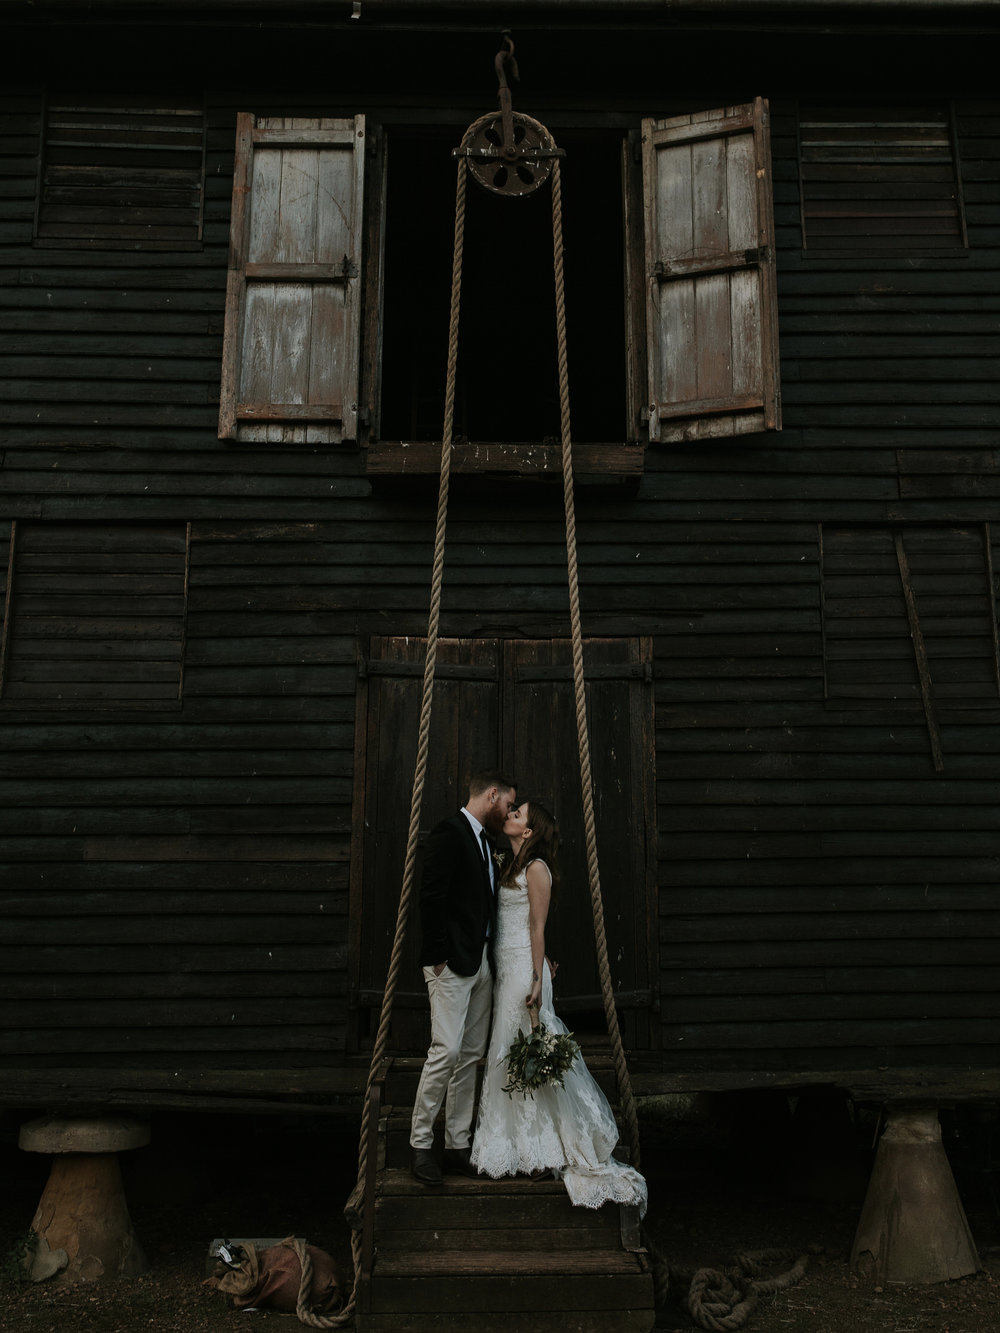 Lauren & Calhoun - Brickendon Estate, Tasmania